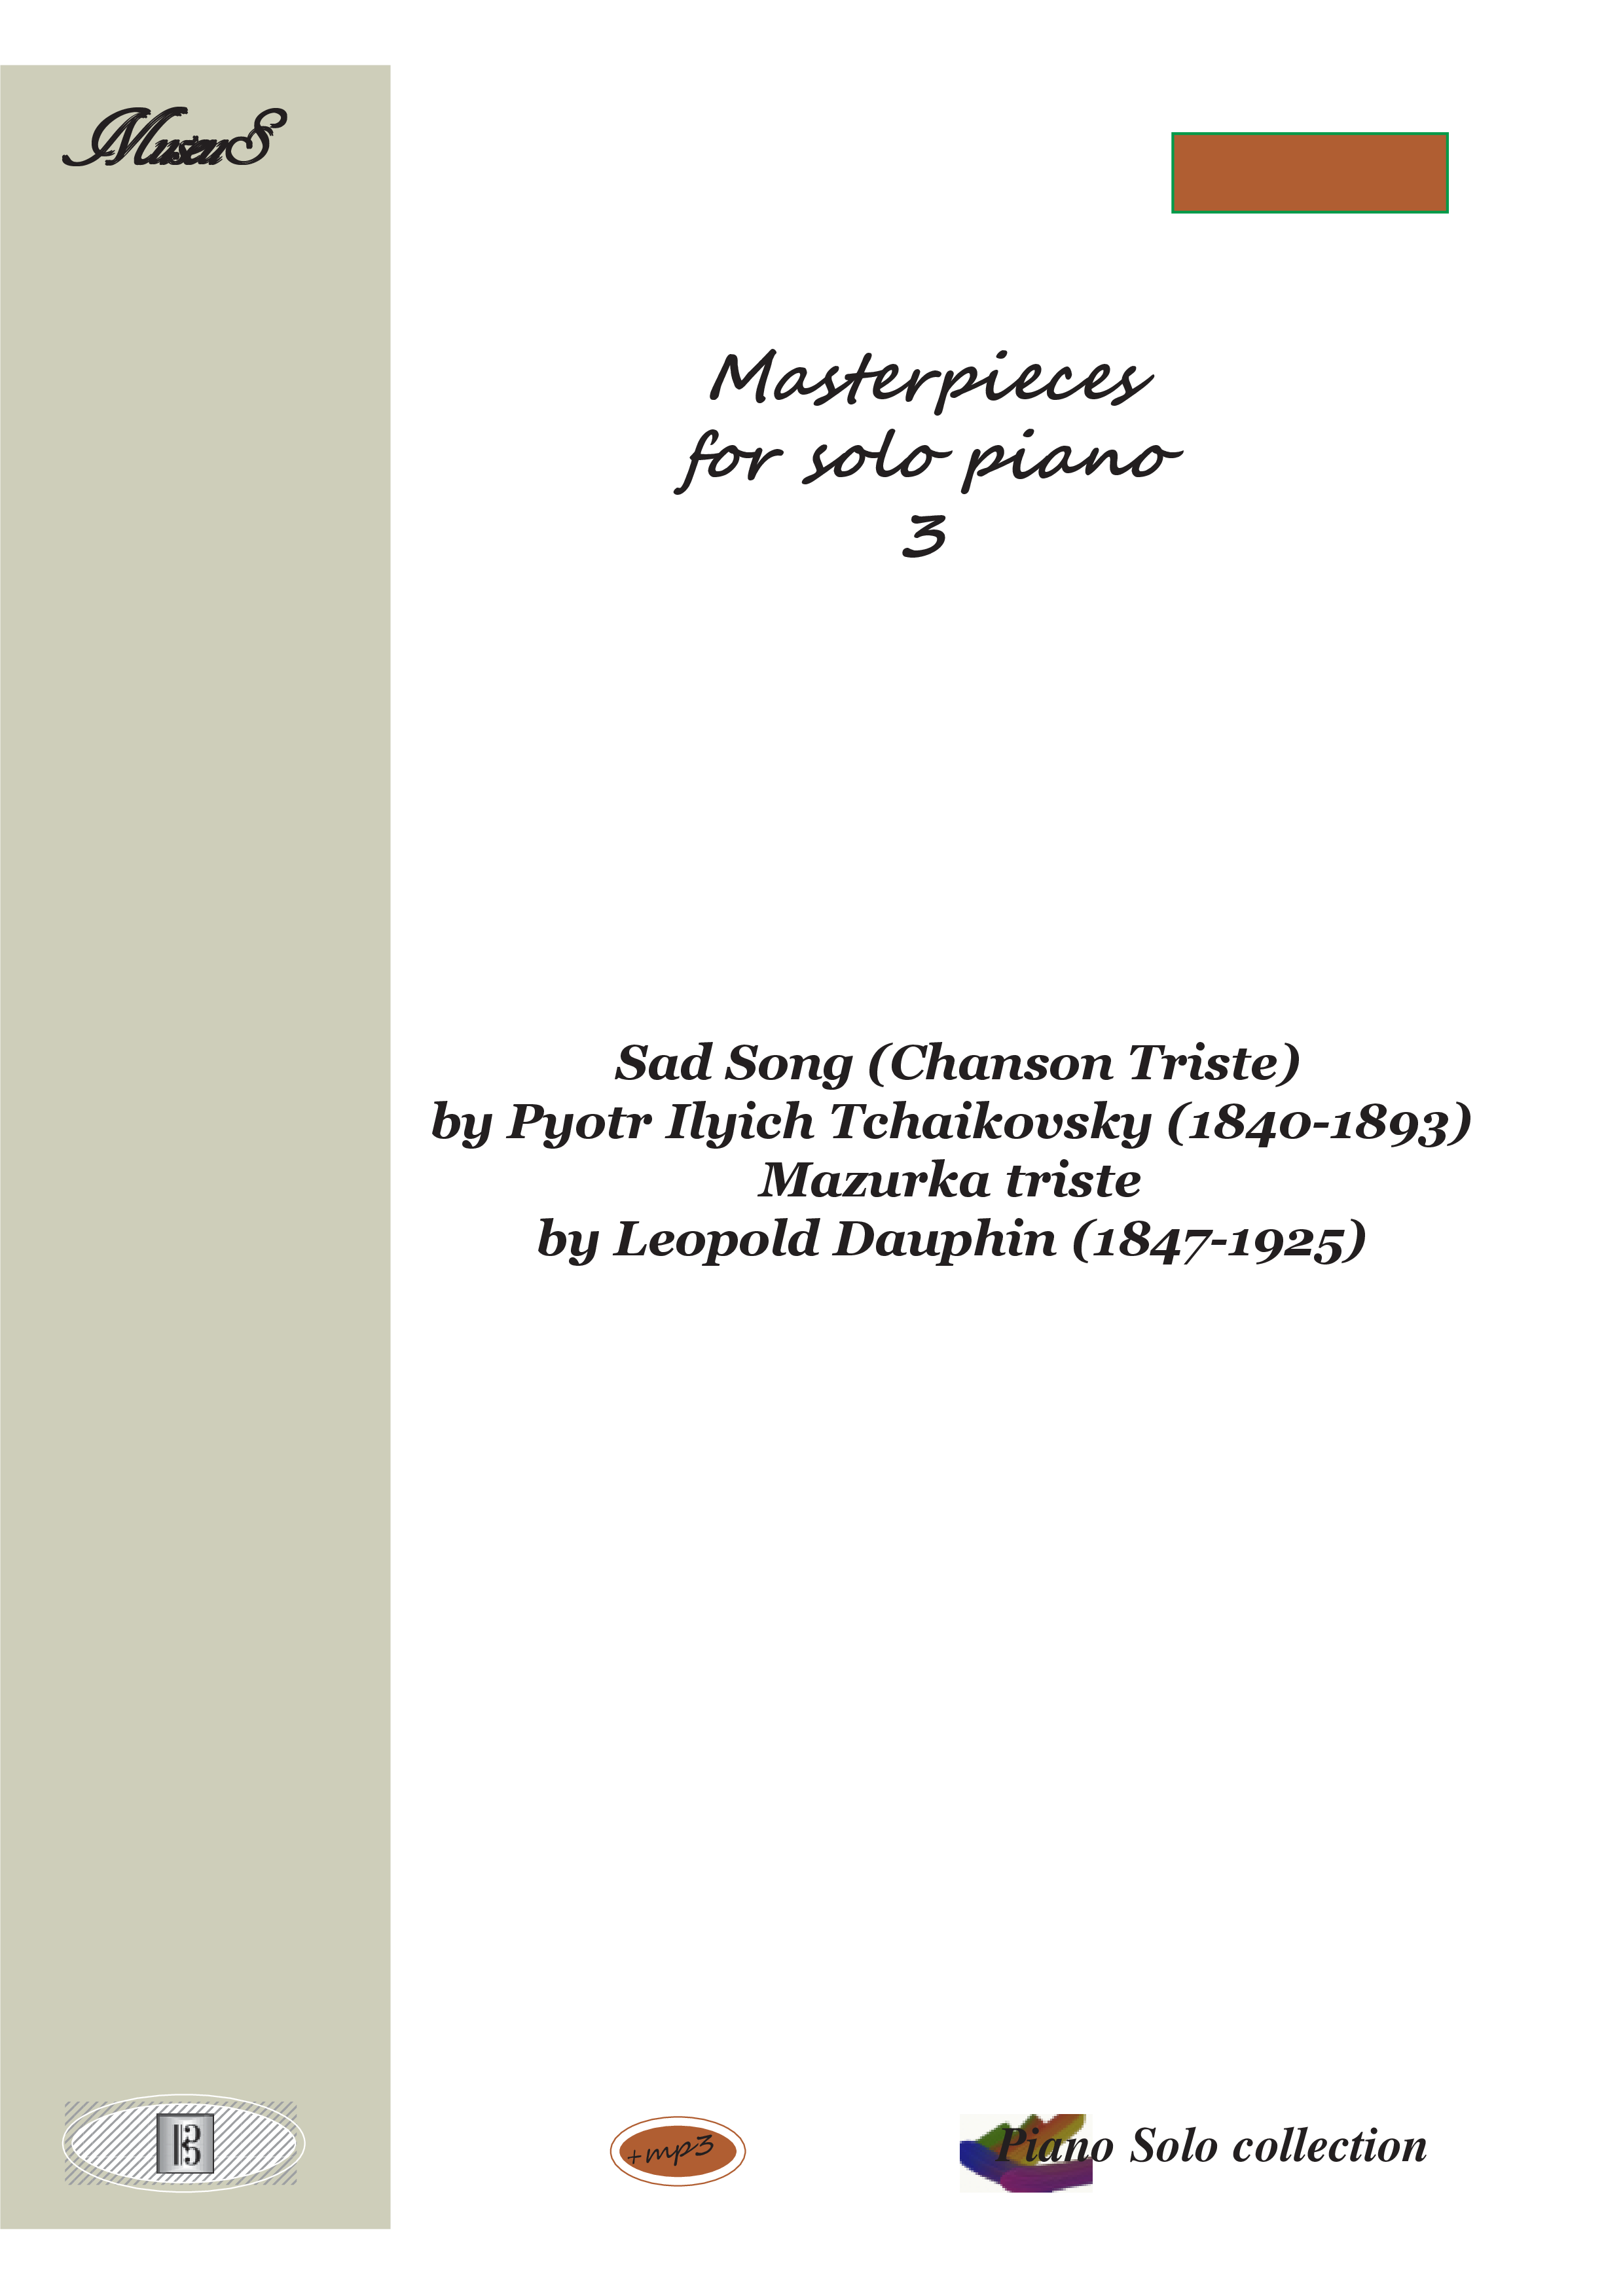 masterpieces-for-solo-piano-3-pdf-mp3-tchaikovsky-dauphin